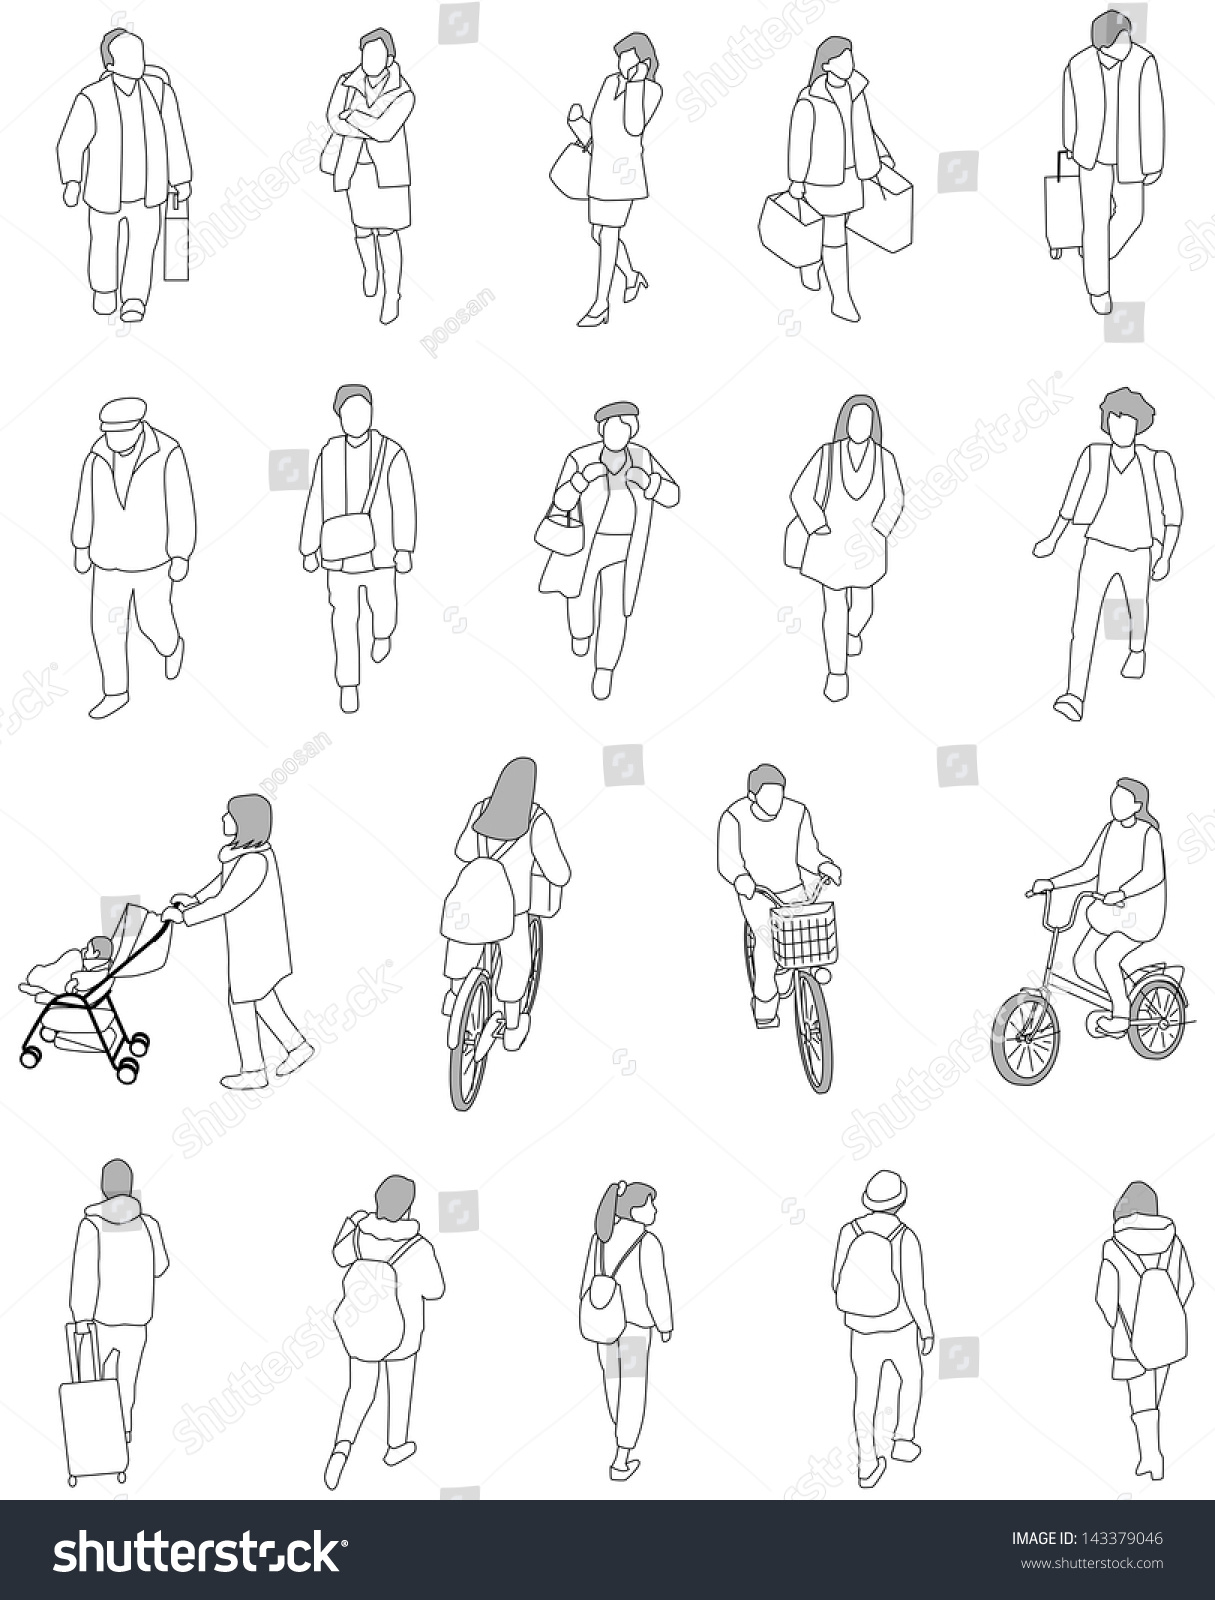 Line Drawing Person : People line illustration imgkid the image kid